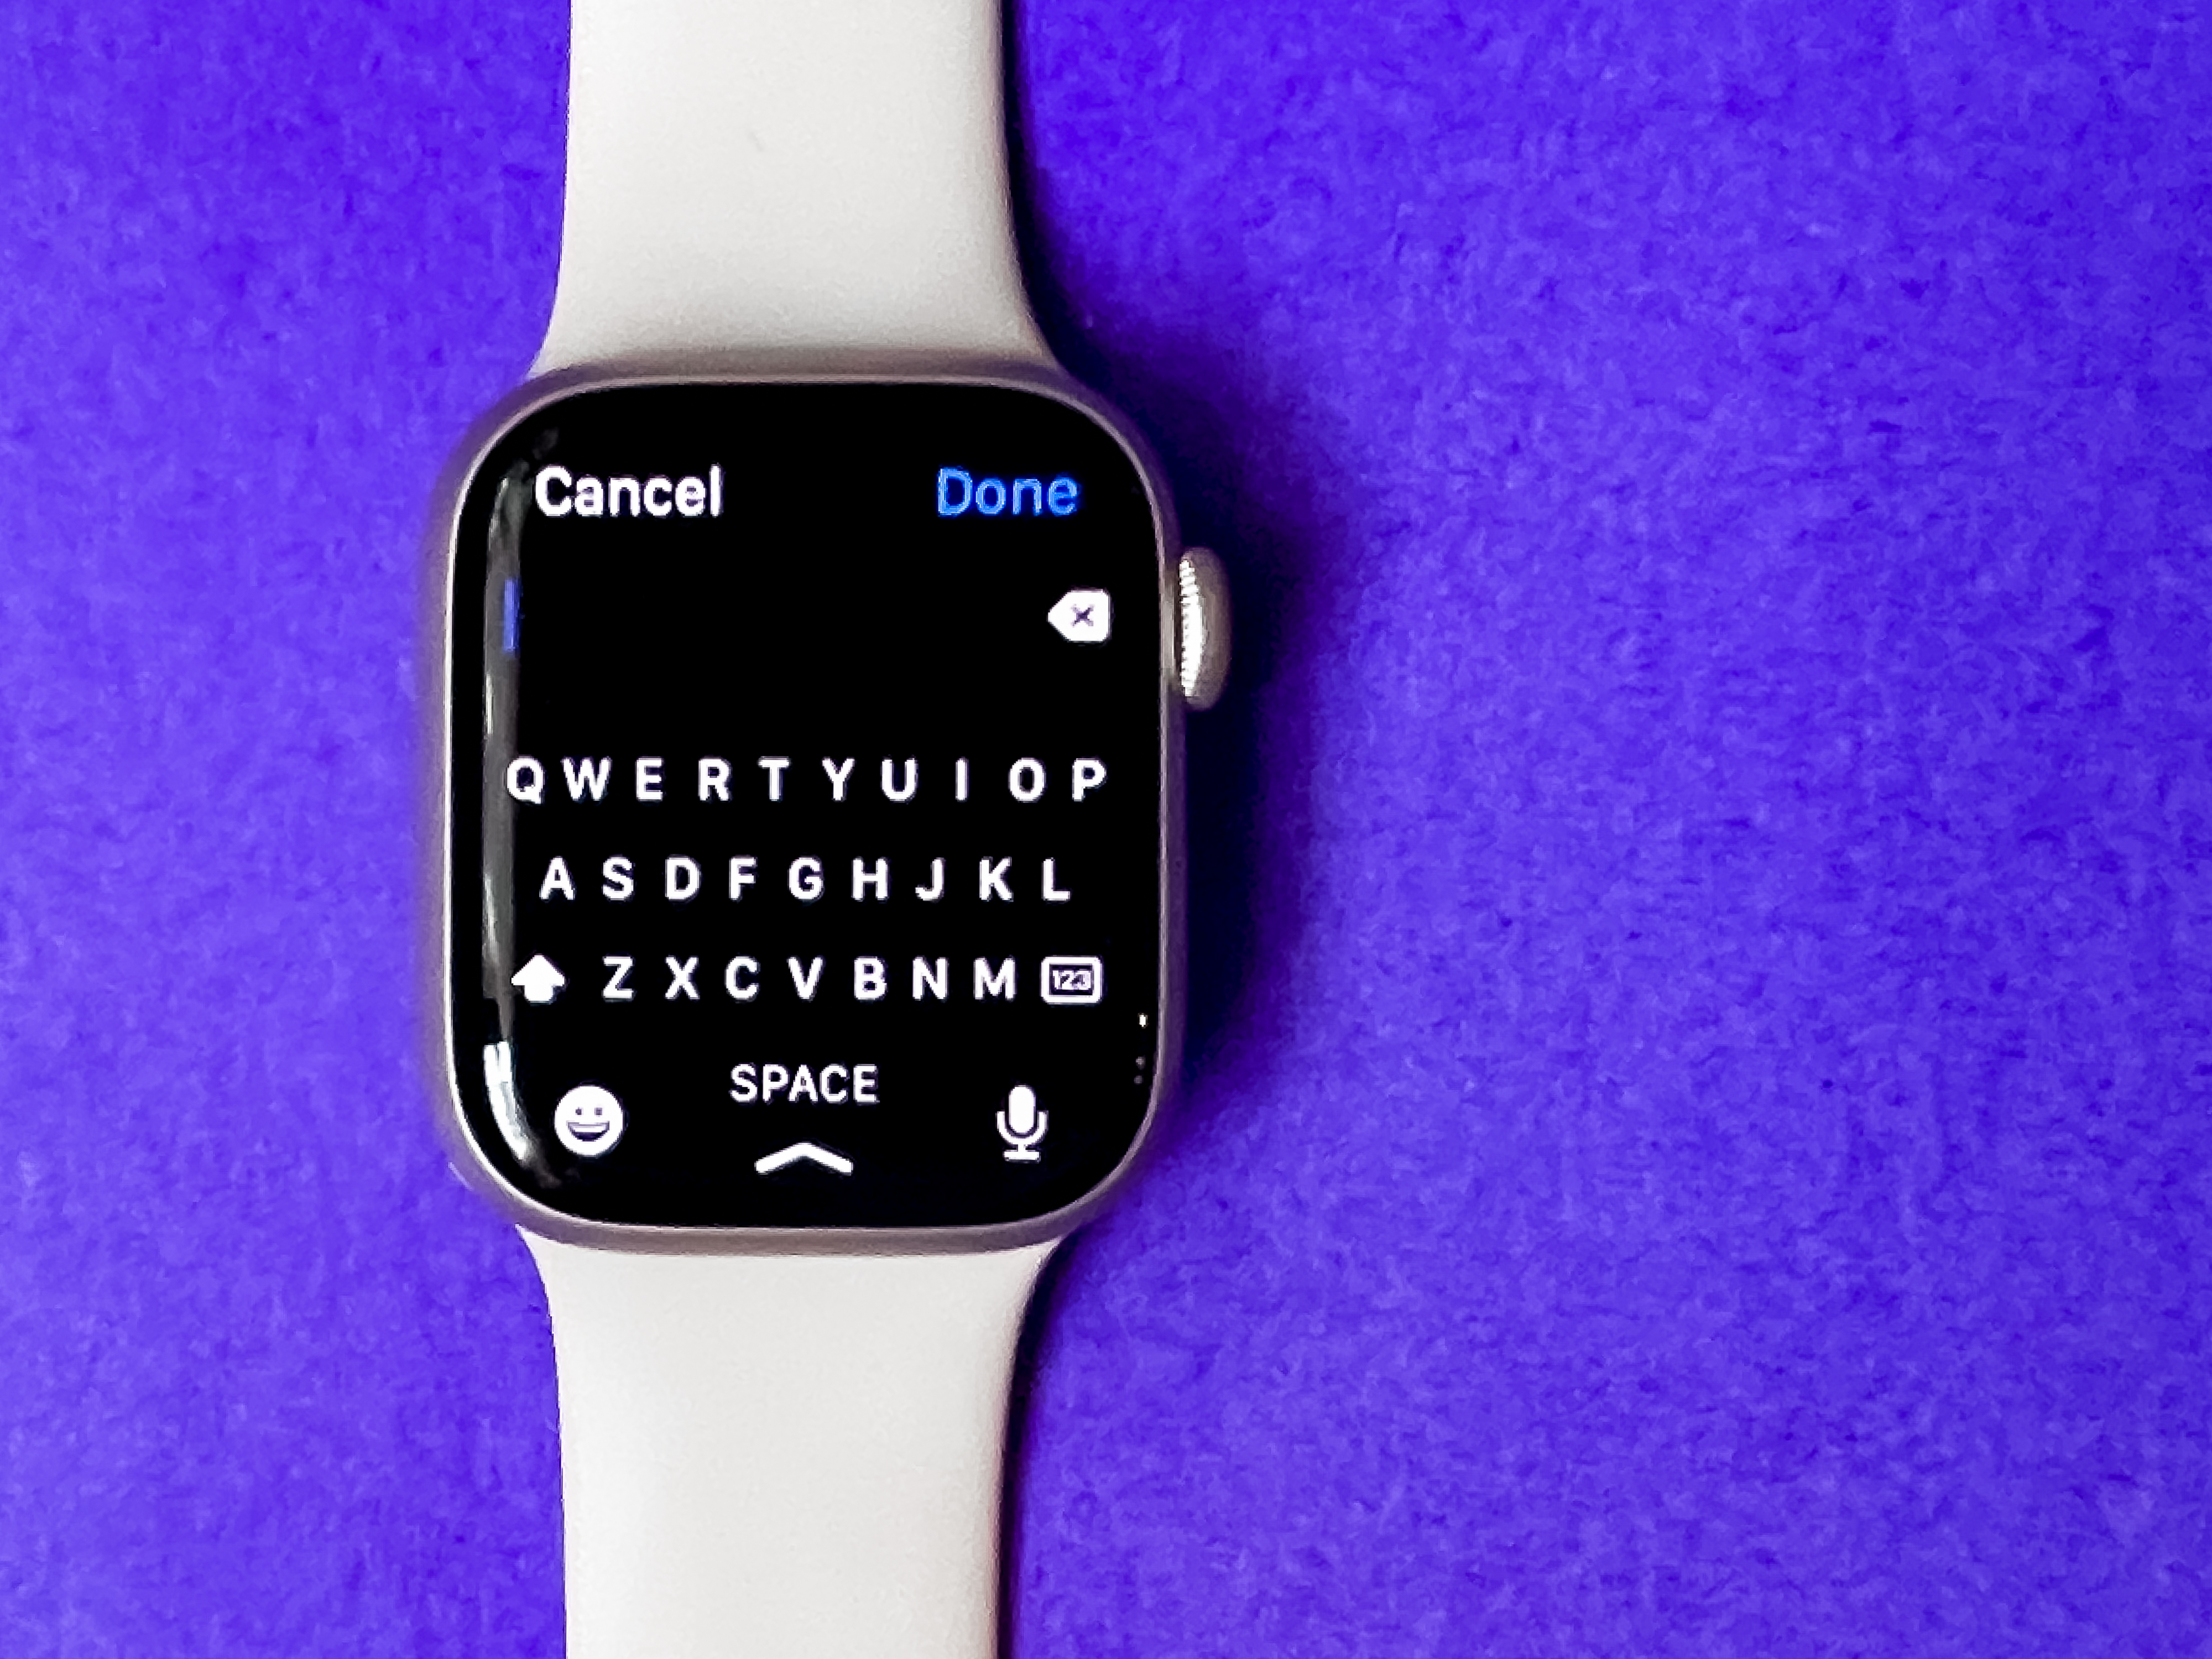 apple-watch-series-7-cnet-review-2021-026